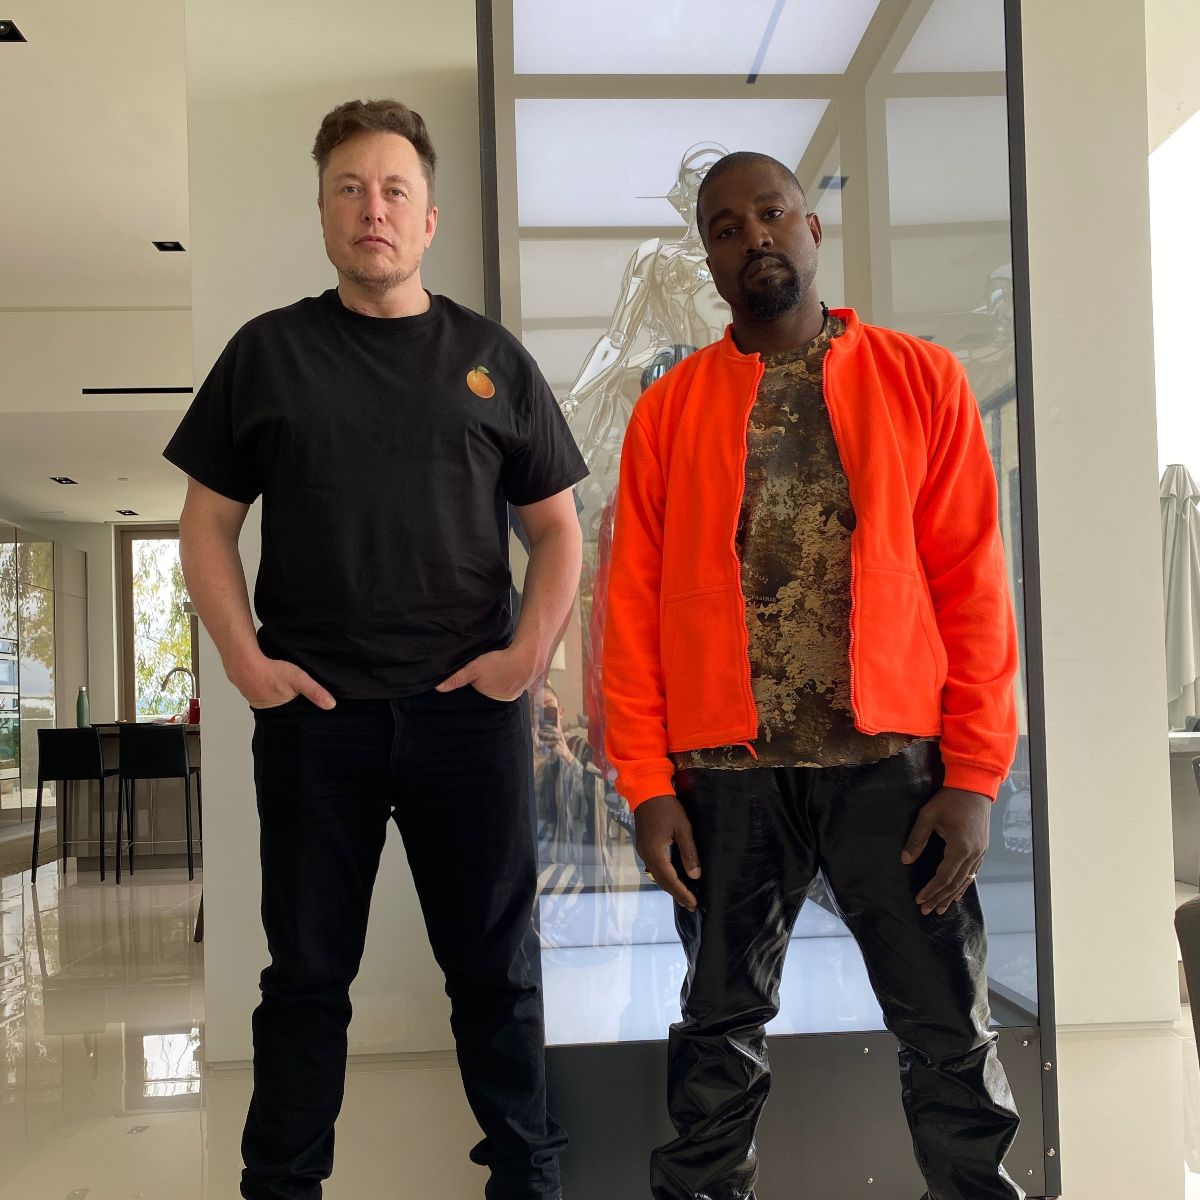 Kanye West And Elon Musk S Photo Is Winning The Internet For This Reason In 2020 Kanye West Kanye Elon Musk